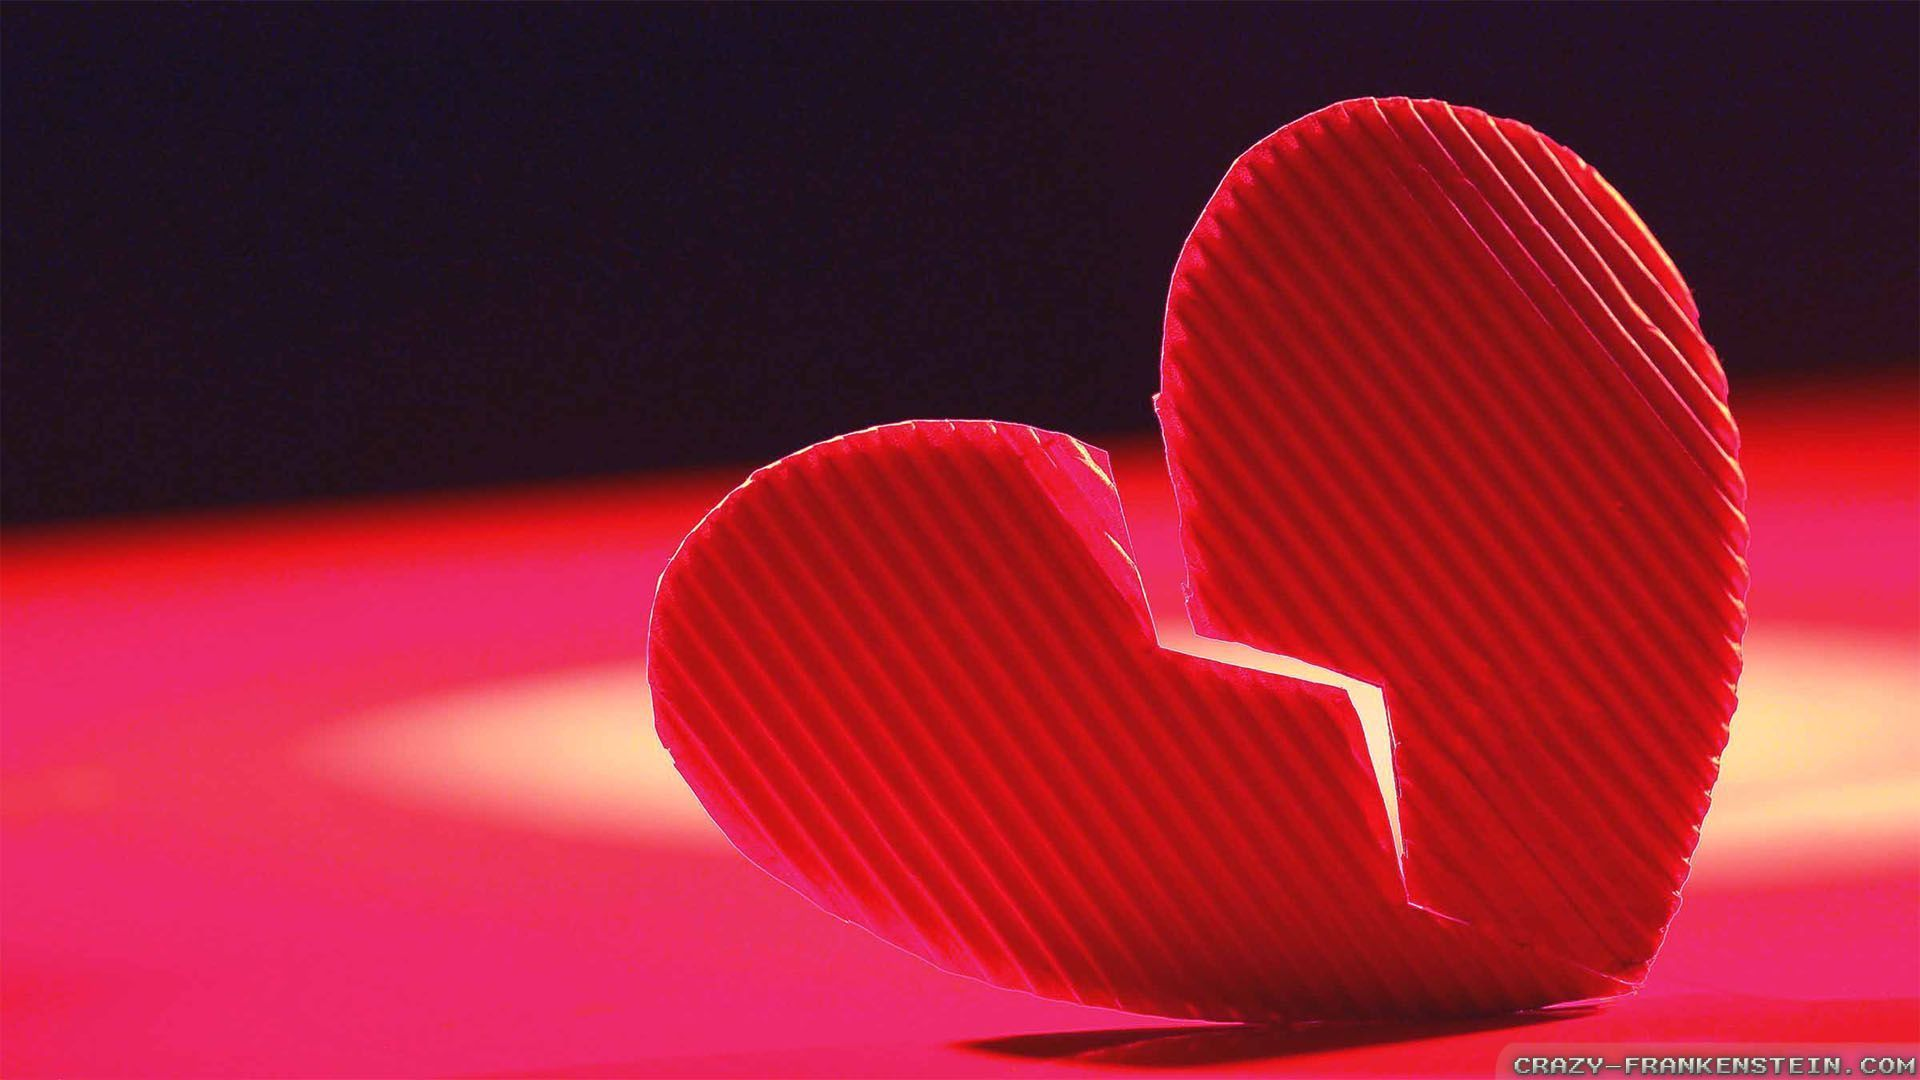 10 Mind Blowing Reasons Why Broken Heart Backgrounds Is Using This Technique For Exposure Broken Broken Heart Wallpaper Broken Heart Pictures Heart Wallpaper